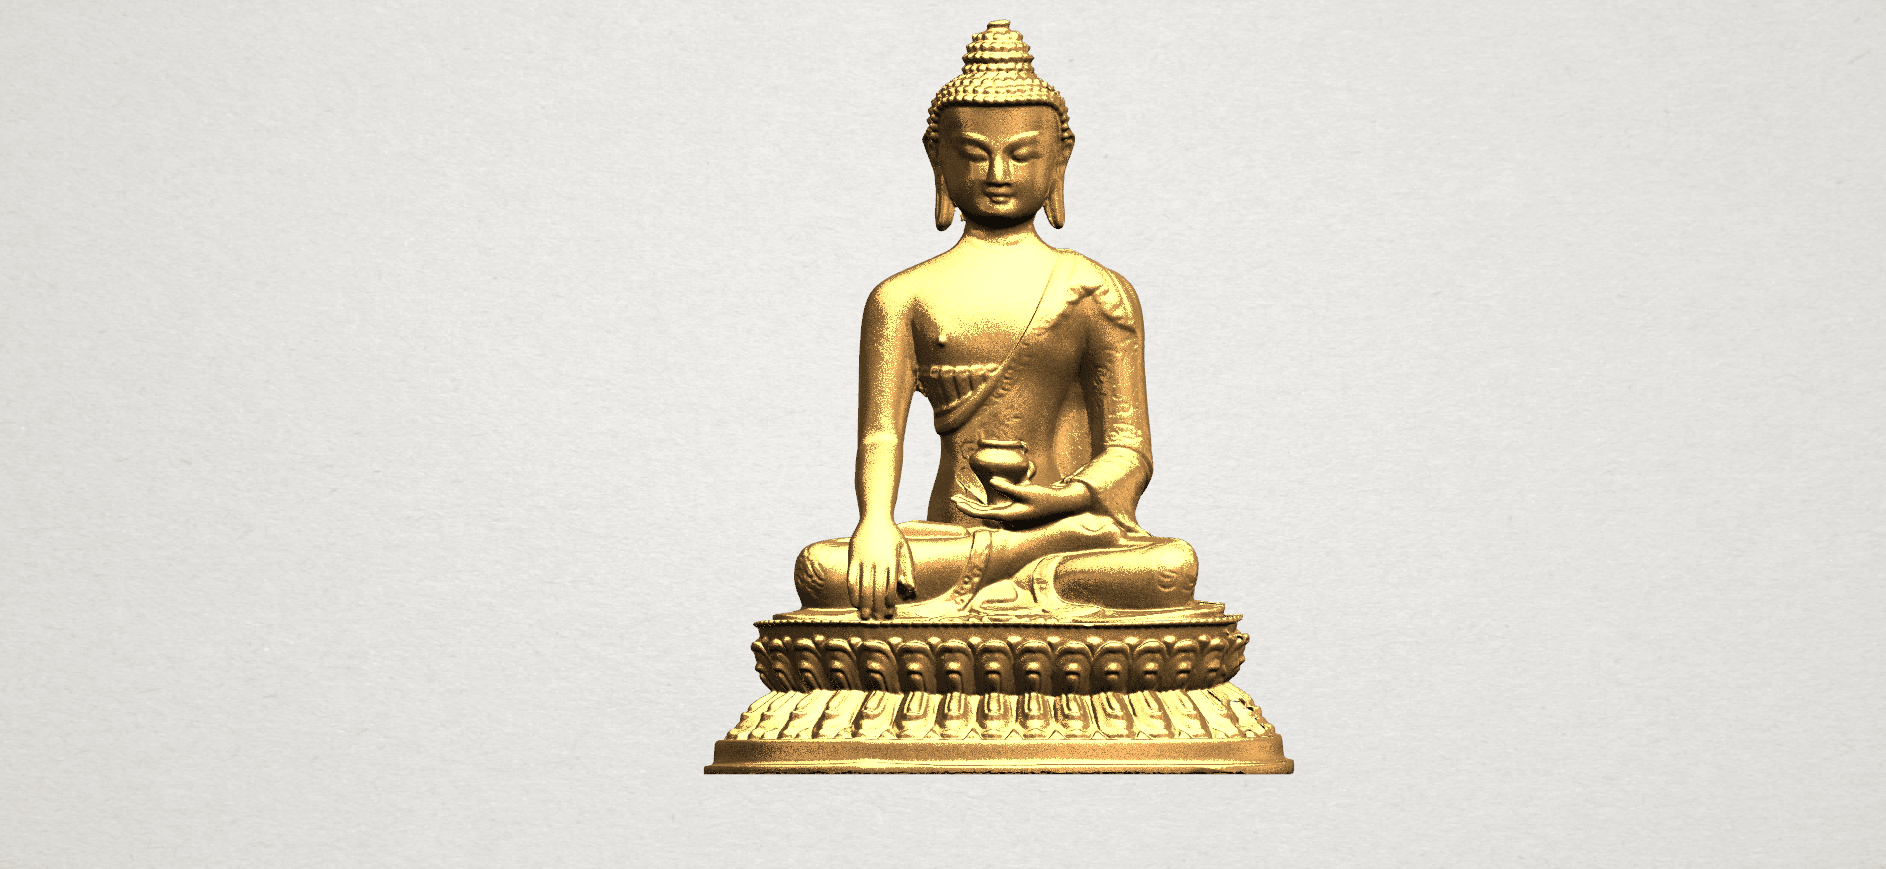 Thai Buddha (iii) A01.png Download free STL file Thai Buddha 03 • 3D printing object, GeorgesNikkei